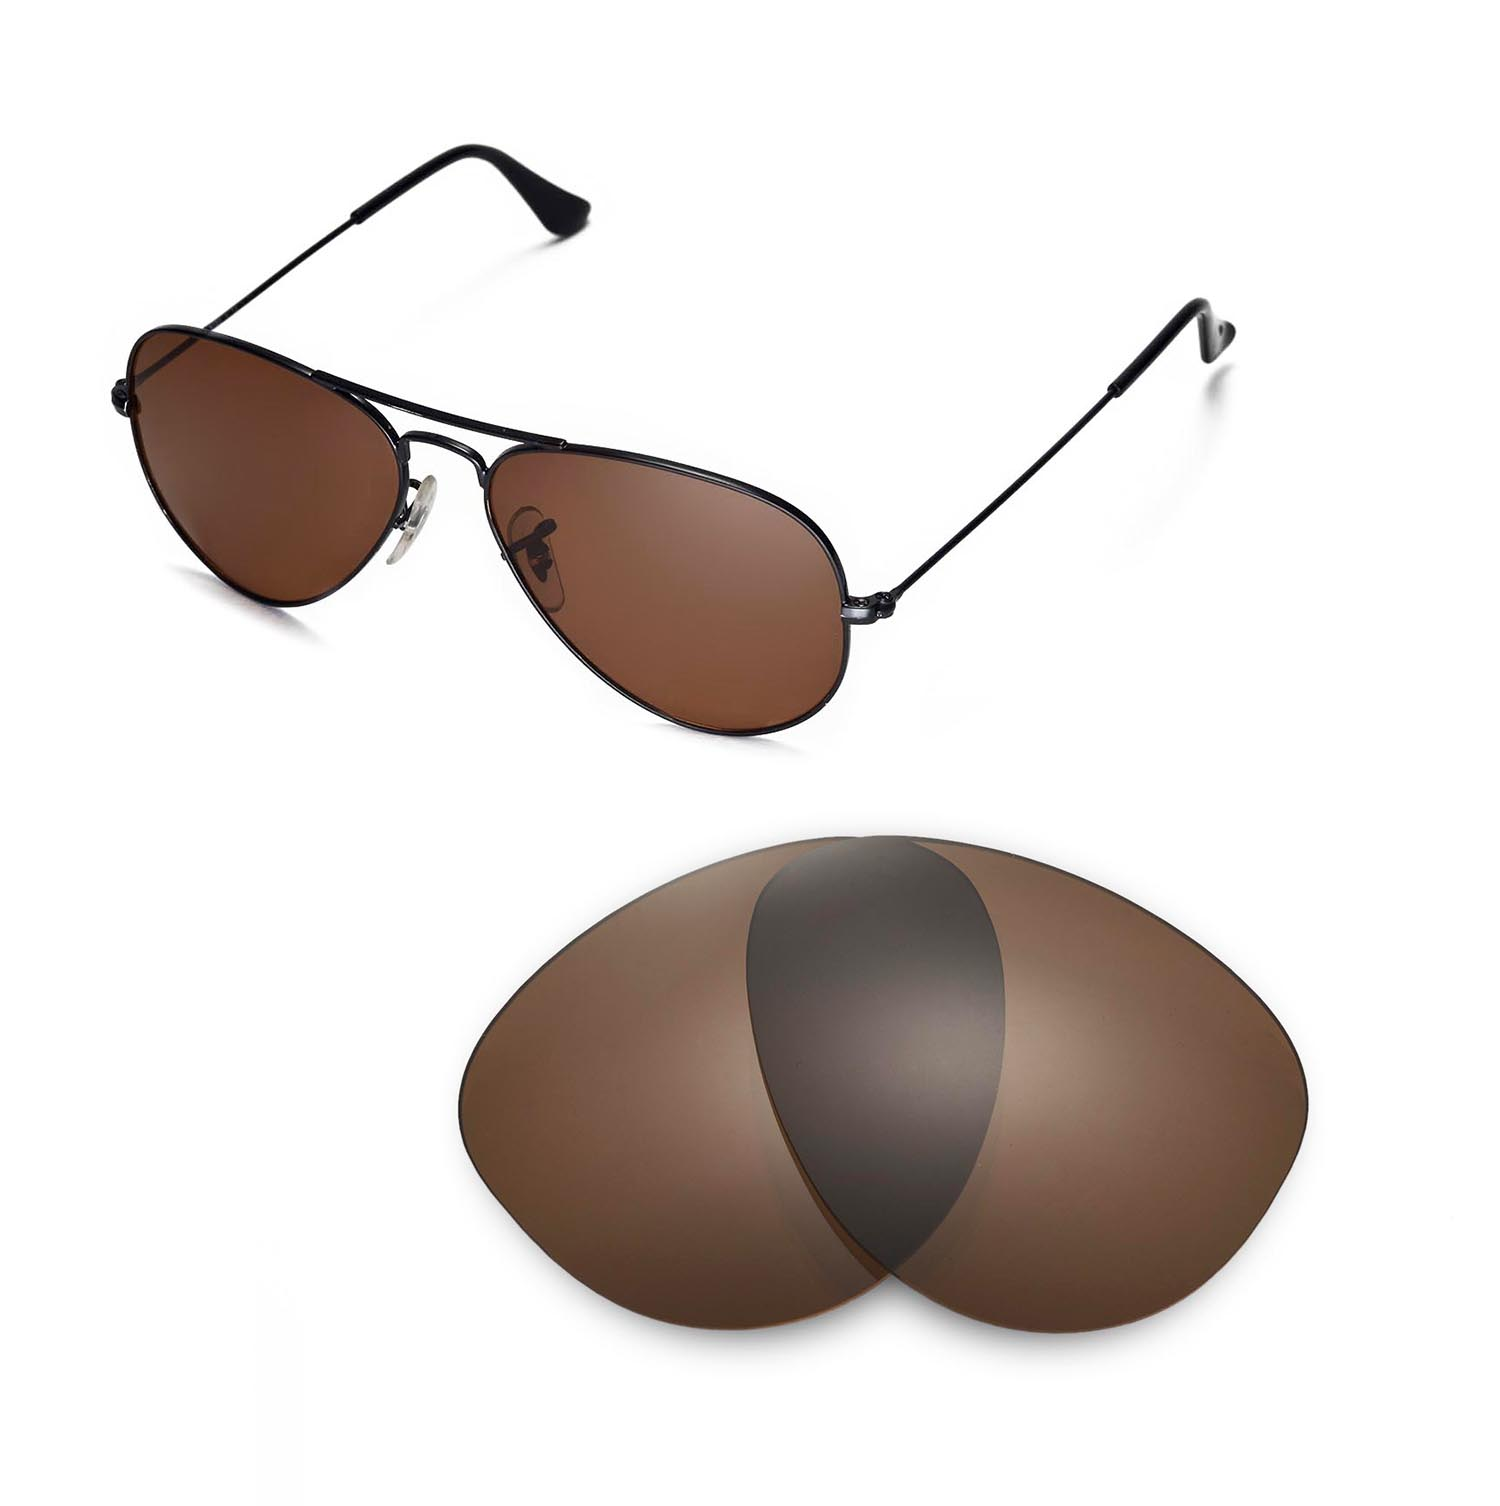 b15e70d8e9 Walleva Polarized Brown Lenses for Ray-Ban Aviator Large Metal 55mm x1   Walleva Microfiber Lens Cleaning Cloth x1. main image